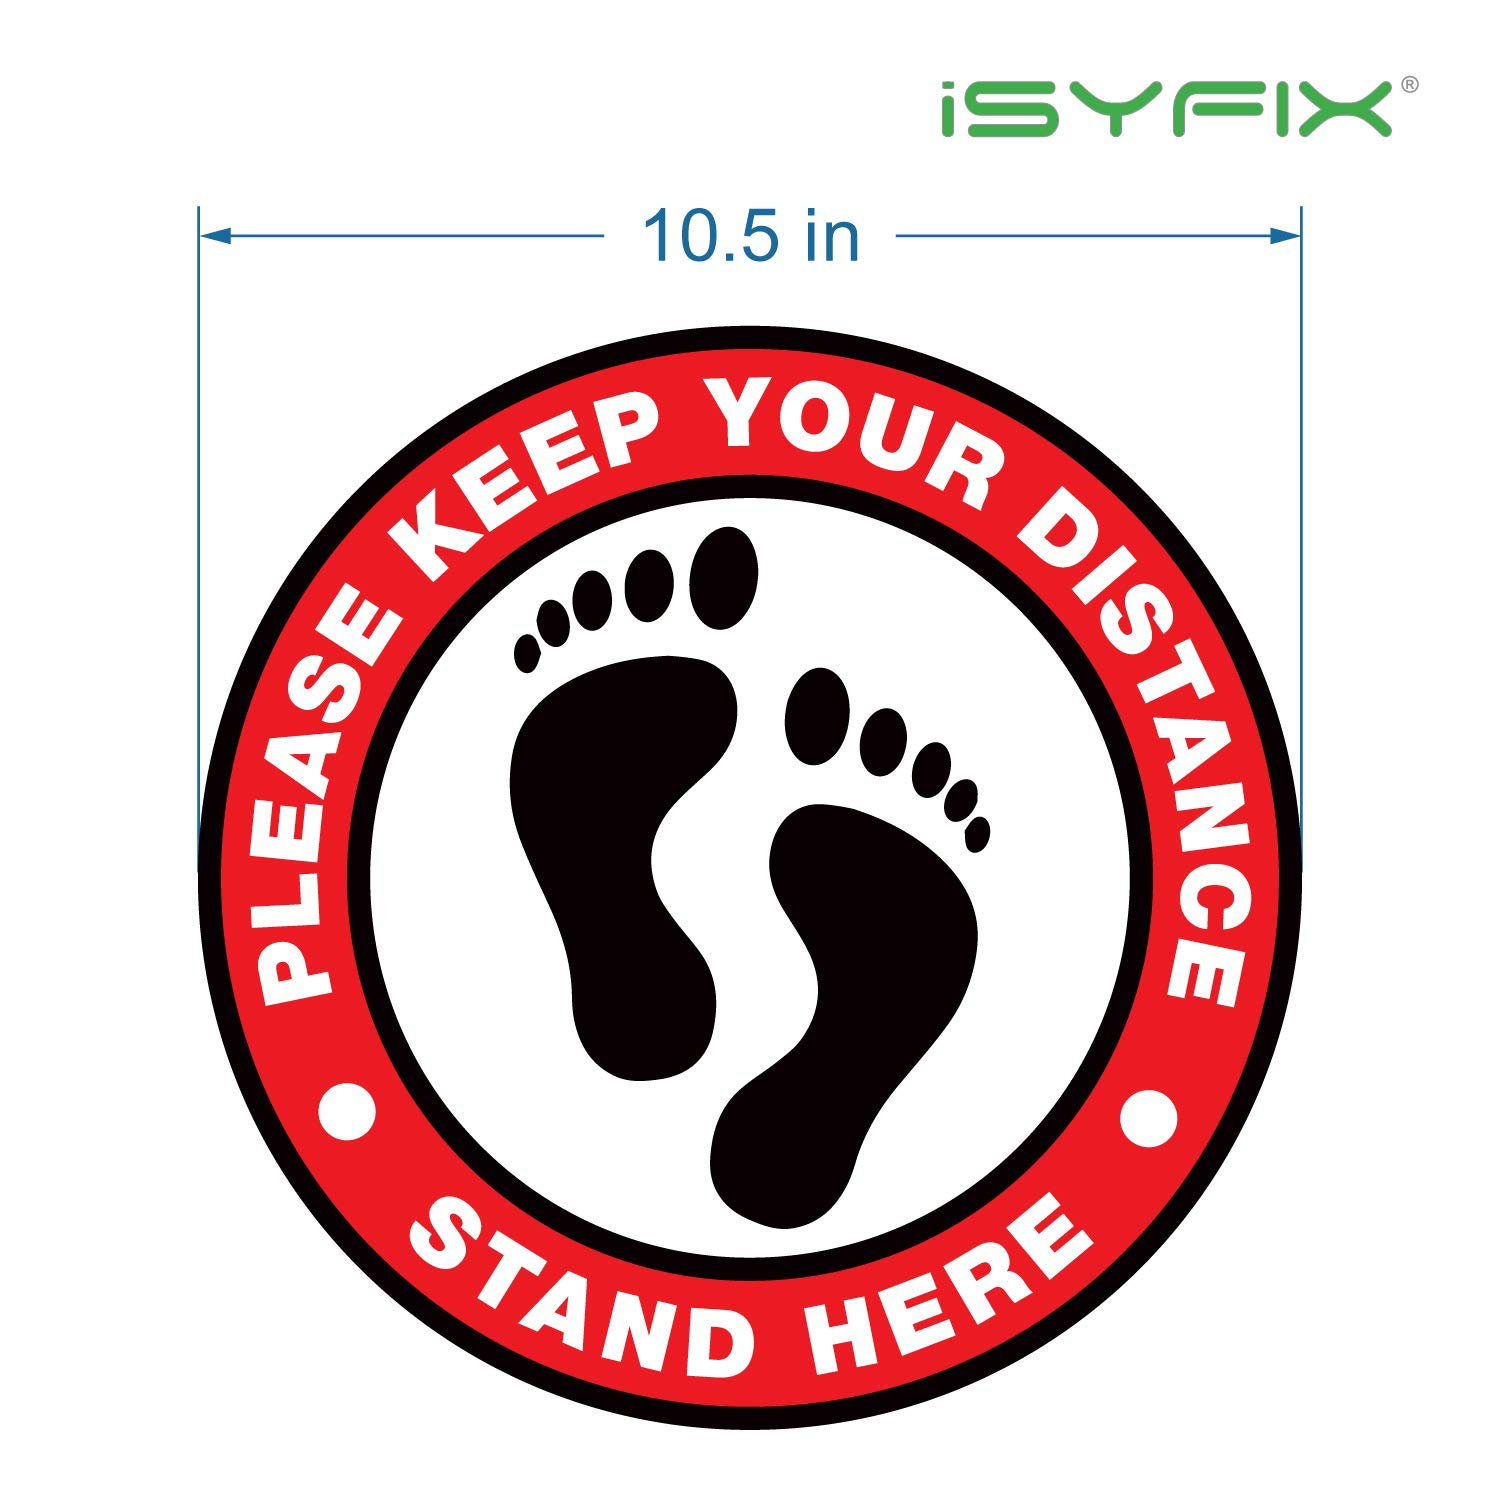 Keep 6 Feet Apart Floor Marker 10.5 Round Waterproof Adhesive Anti-Slip Lamination 5Pack Red//White BKS Physical Distancing in Effect Social Distancing Floor Sticker Stand Here Floor Sign